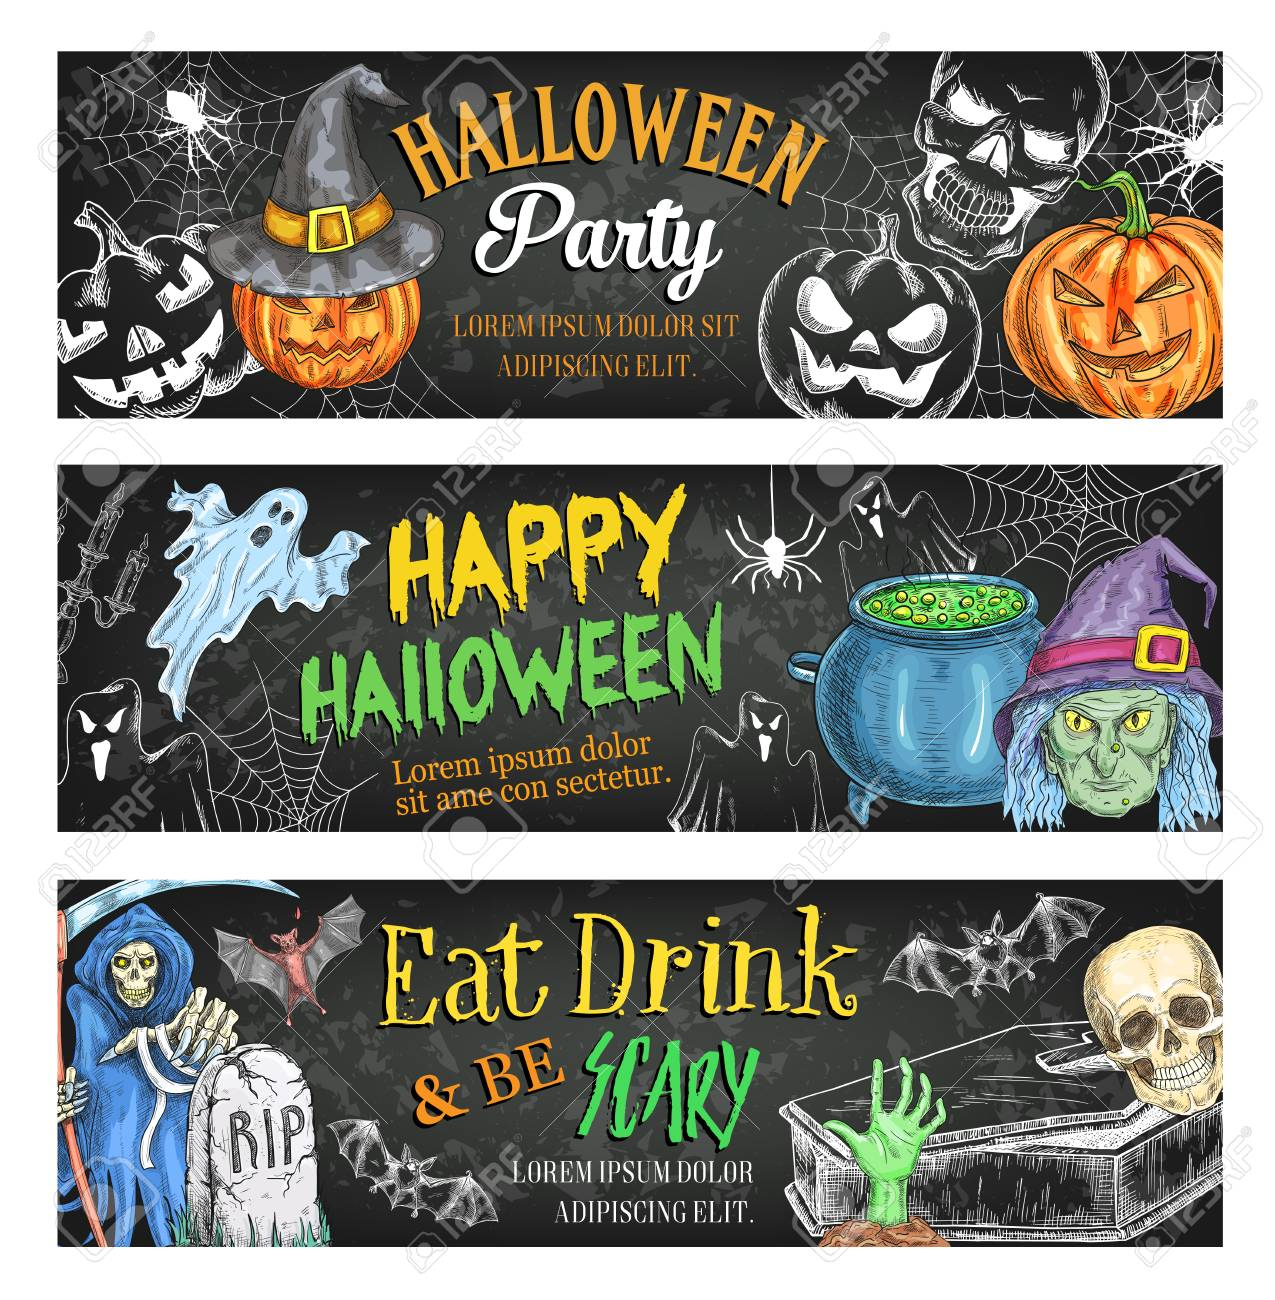 Halloween Holiday Horror Or Death Party Sketch Banners For Trick Treat Night Vector